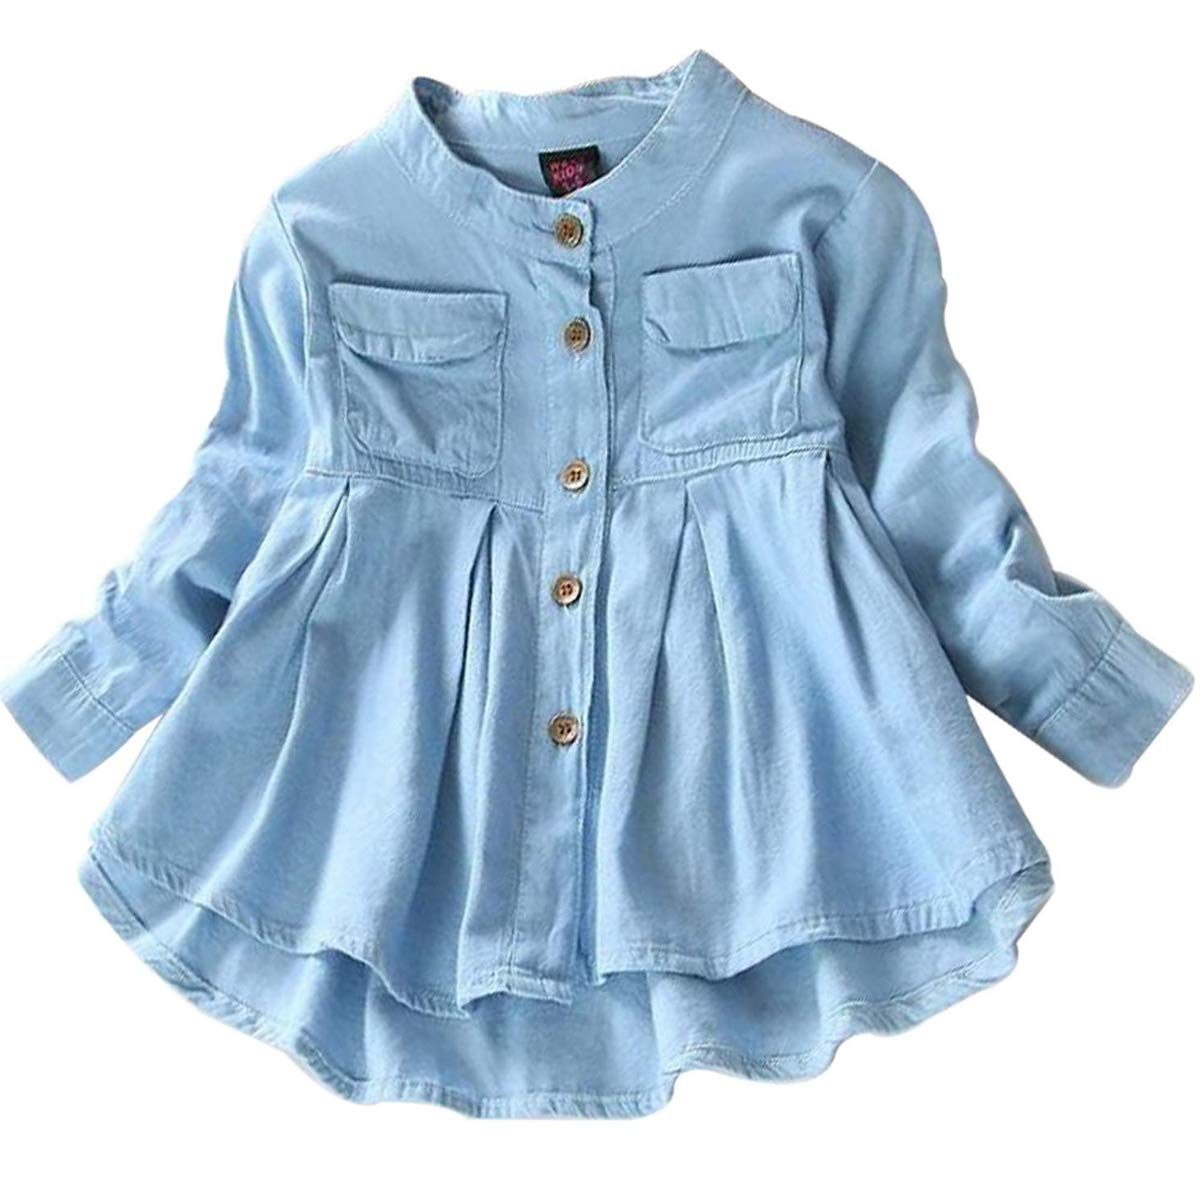 Toddler Kid Baby Girls Top Ruffled Hem Denim Shirt Long Sleeve Ruffle Blouses Autumn Casual Clothes Set